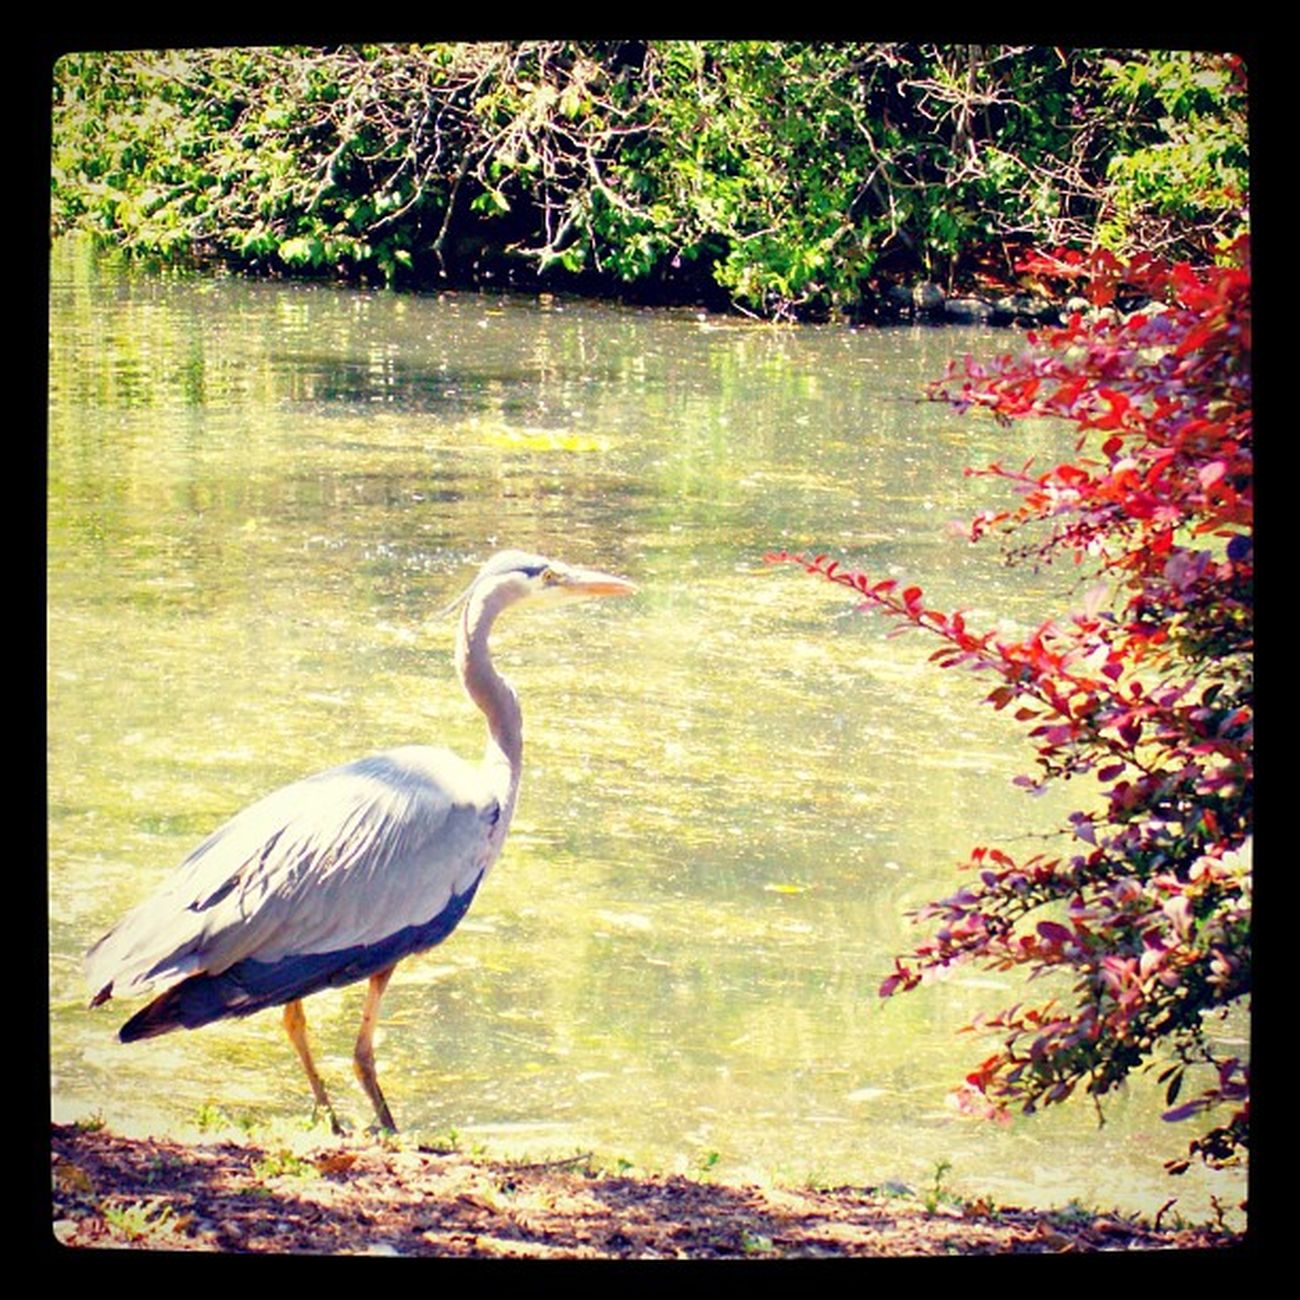 Crane Bird BeaconHillPark Beaconhill  park wildlife wild beautiful tall gray blue pond summer bushes bush green red sunny water victoria bc